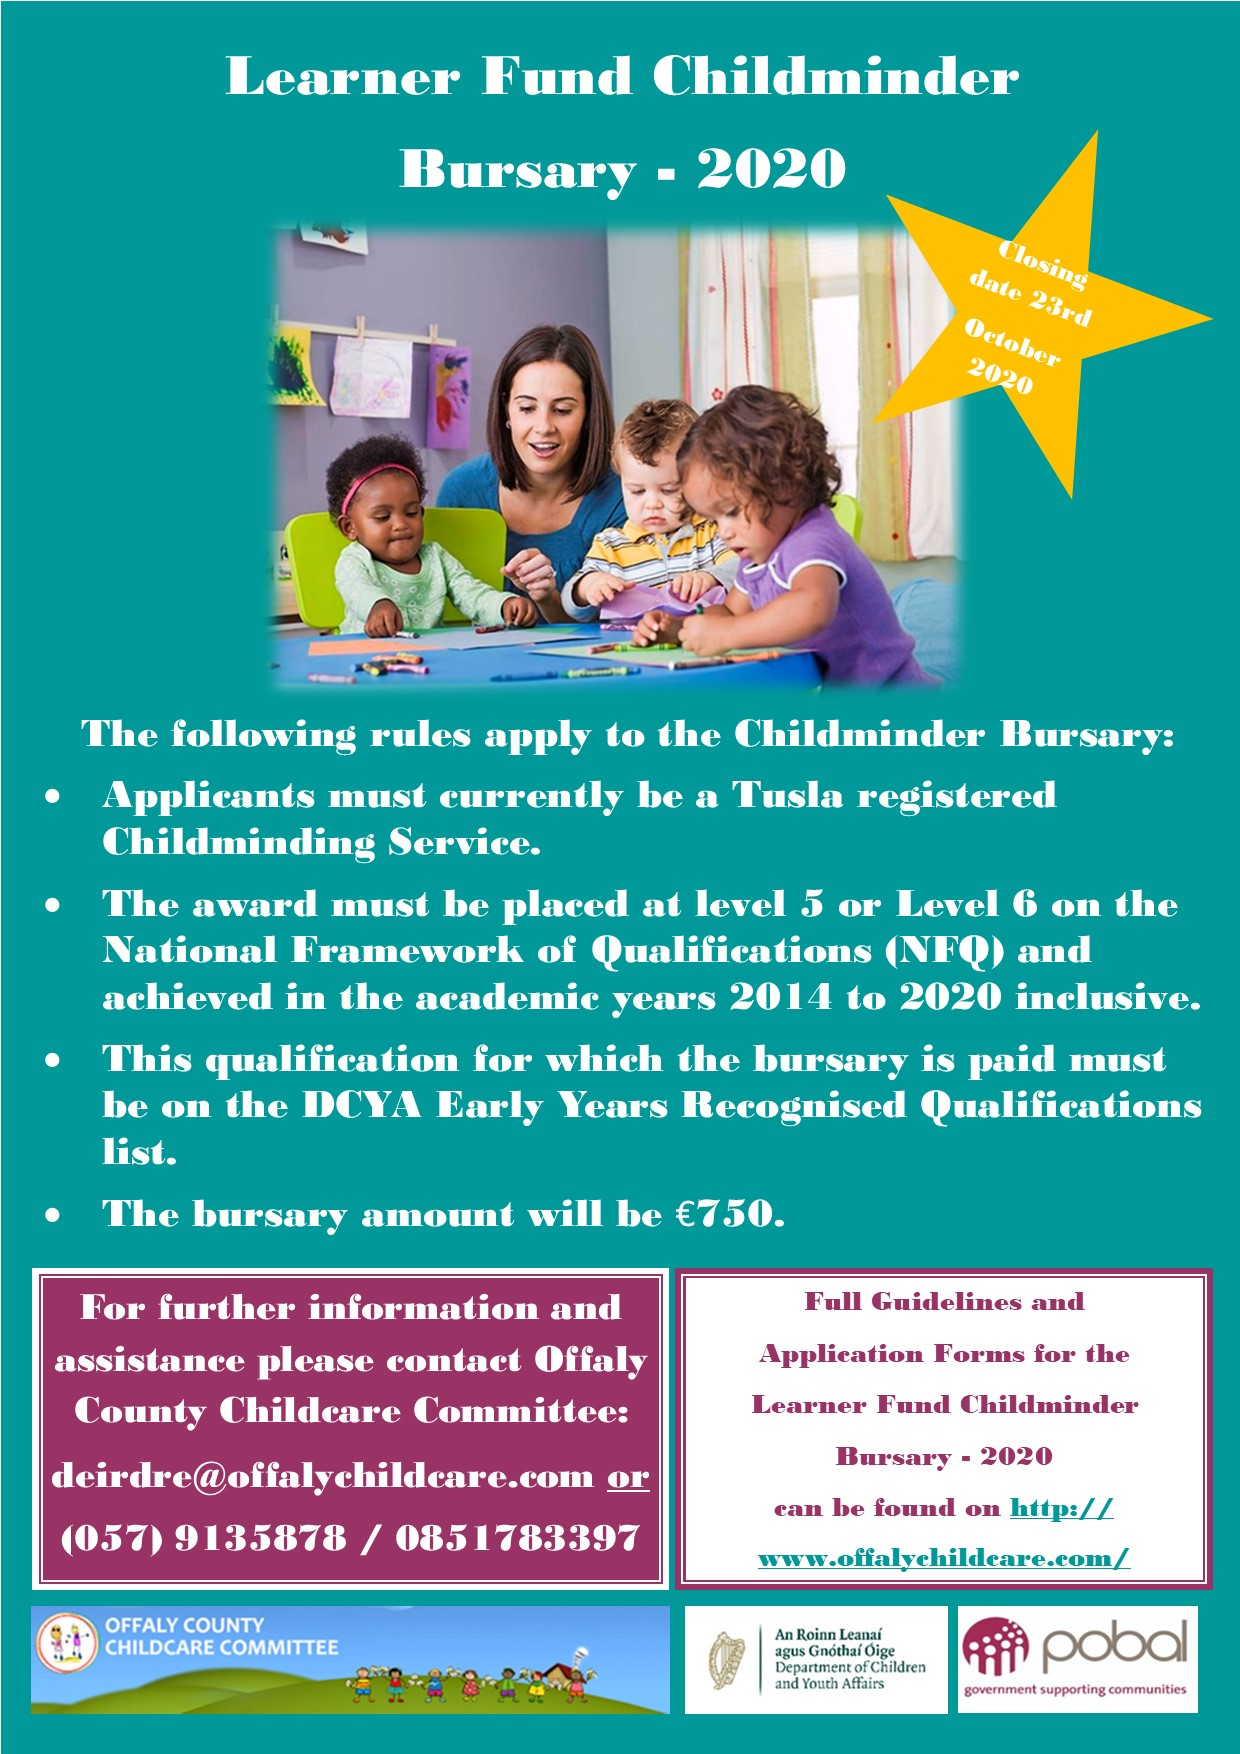 Poster Learner Fund Childminder Bursary 2020